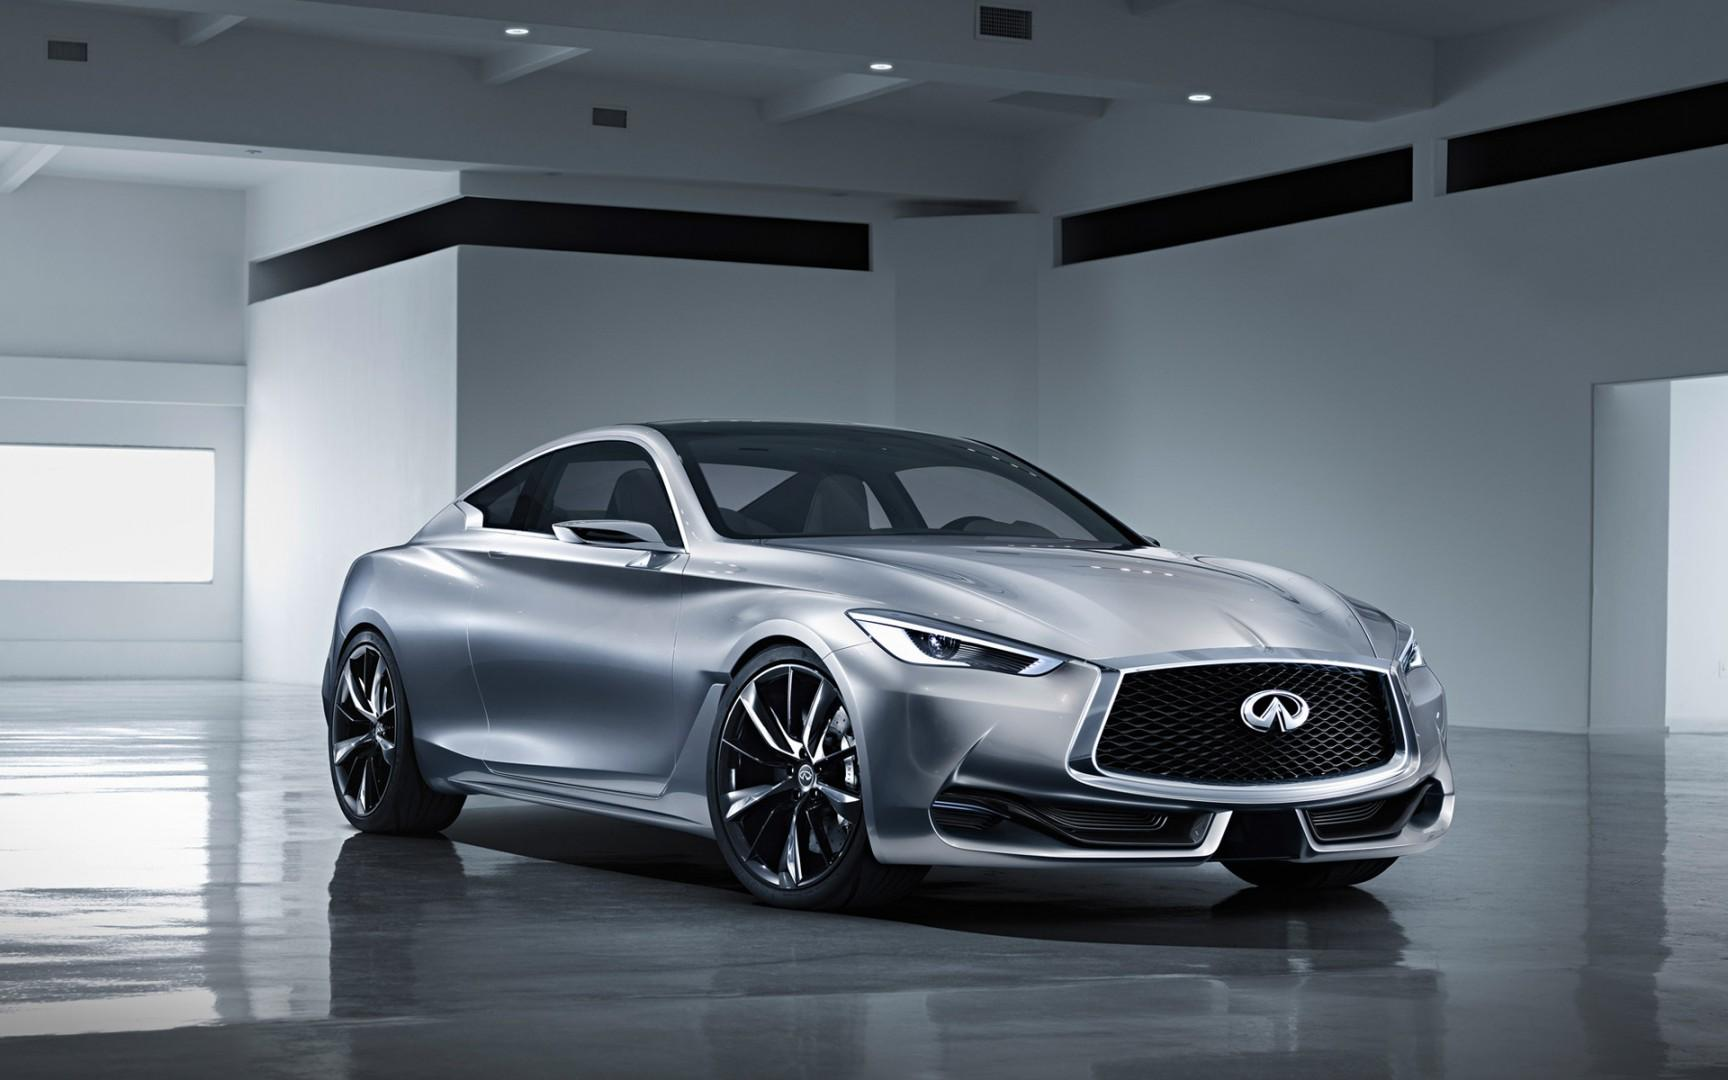 Wallpaper Blink - Best of Infiniti Q60 Wallpapers HD for Android ...